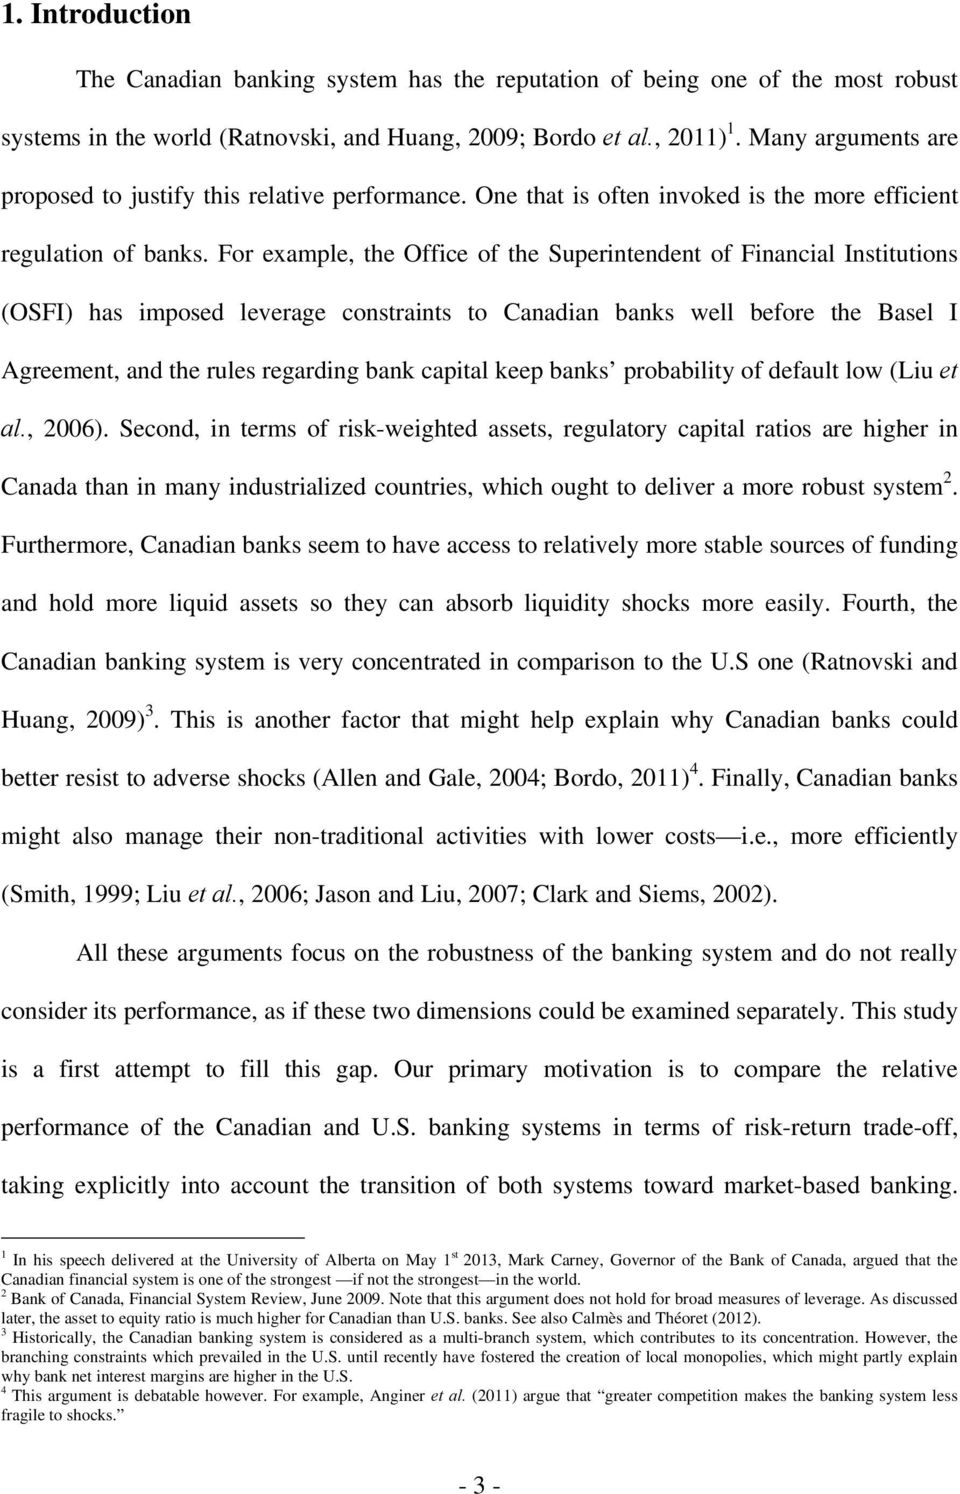 For example, the Office of the Superintendent of Financial Institutions (OSFI) has imposed leverage constraints to Canadian banks well before the Basel I Agreement, and the rules regarding bank